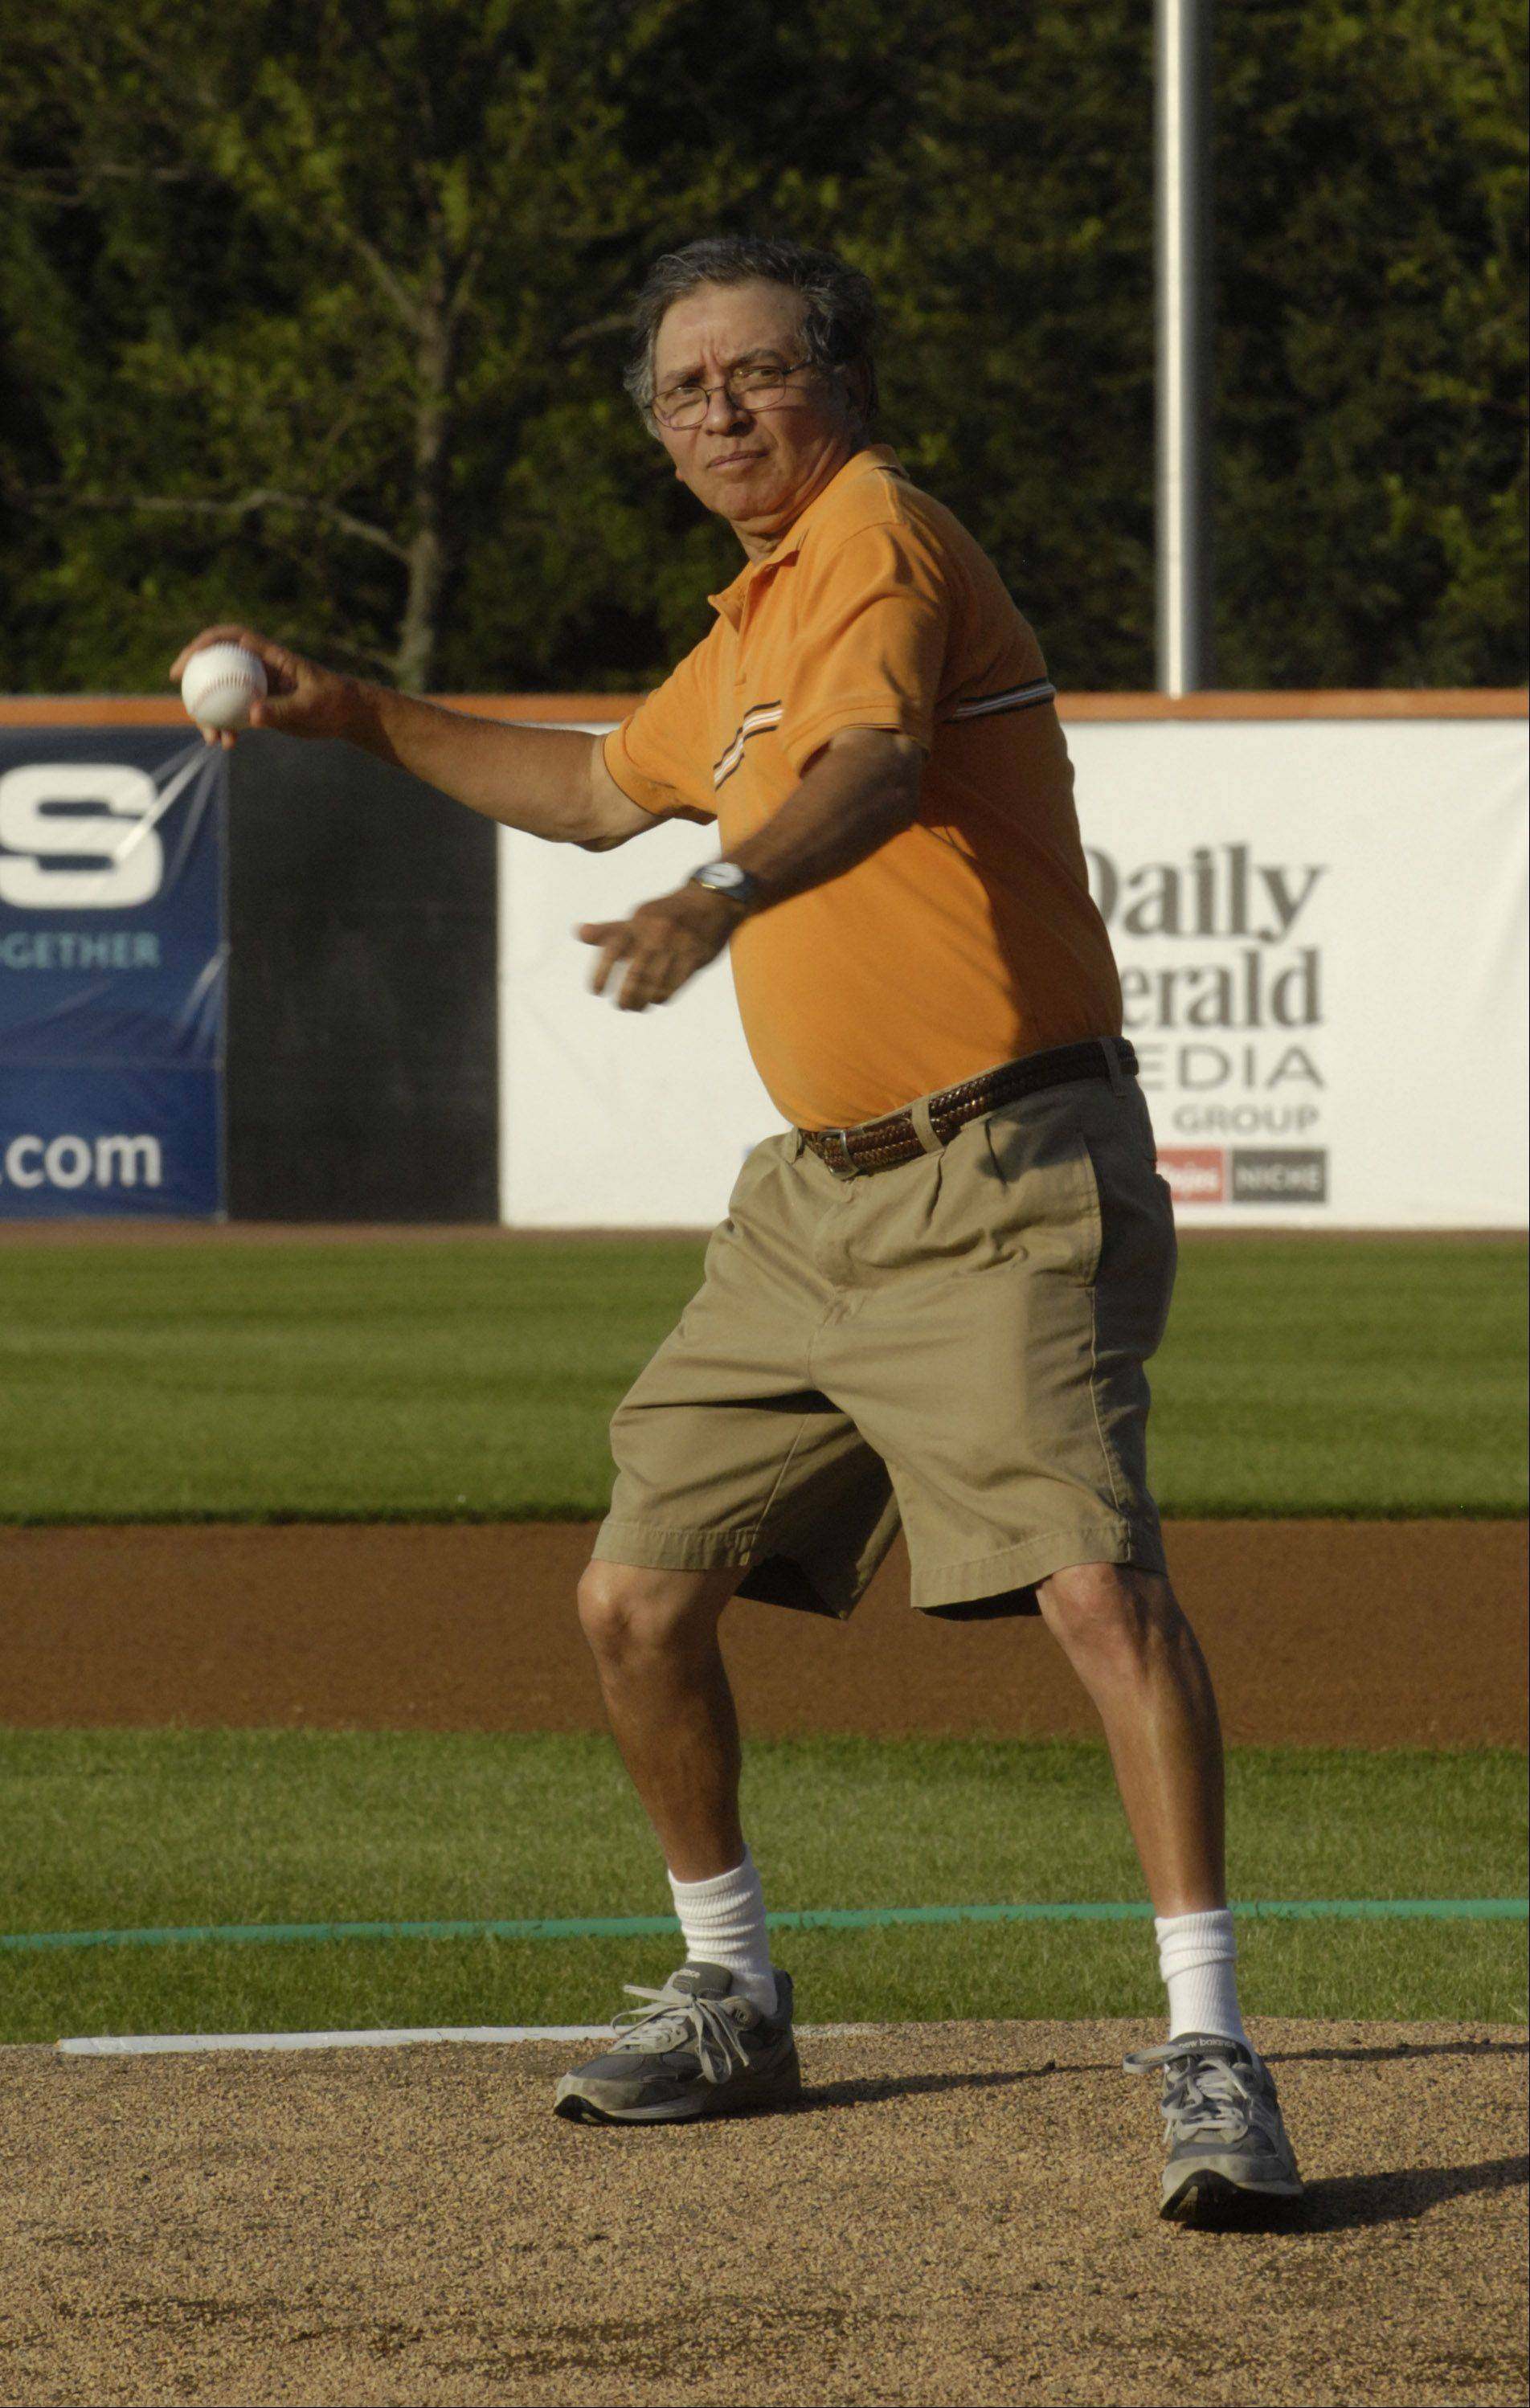 JOE LEWNARD/jlewnard@dailyherald.comDaily Herald Sports Columnist Mike Imrem throws out the first pitch before Wednesday's Schaumburg Boomers game.